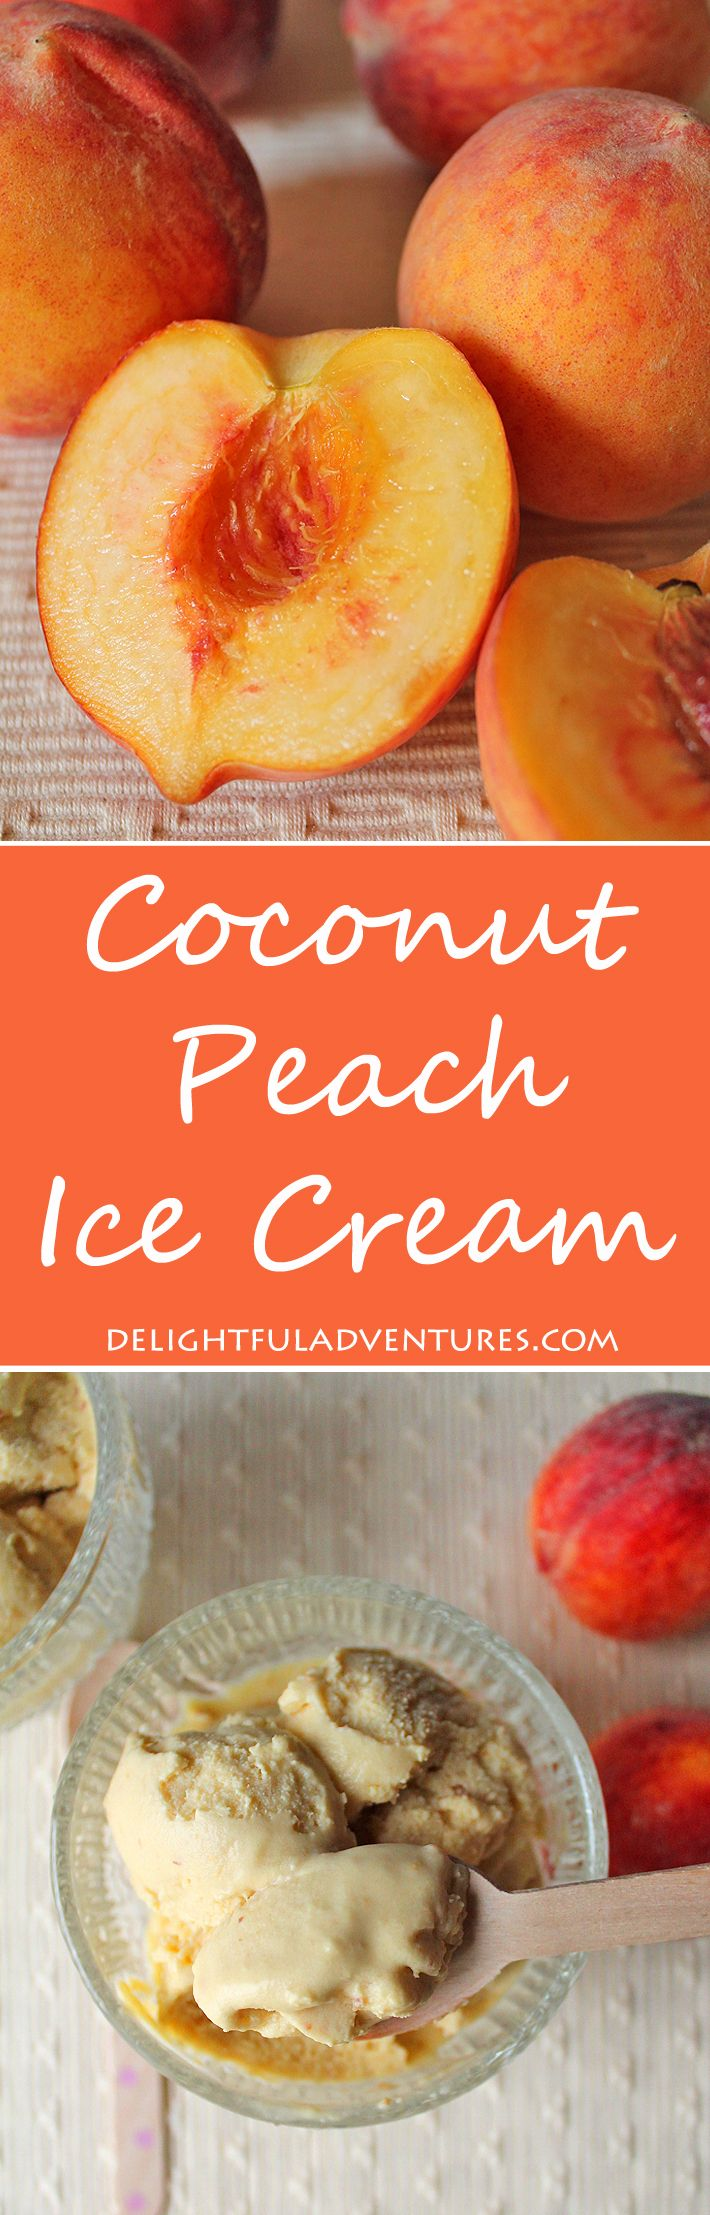 This vegan coconut peach ice cream just screams summer! It's tangy, sweet and contains a surprisingly delicious flavour combo: peach + coconut.